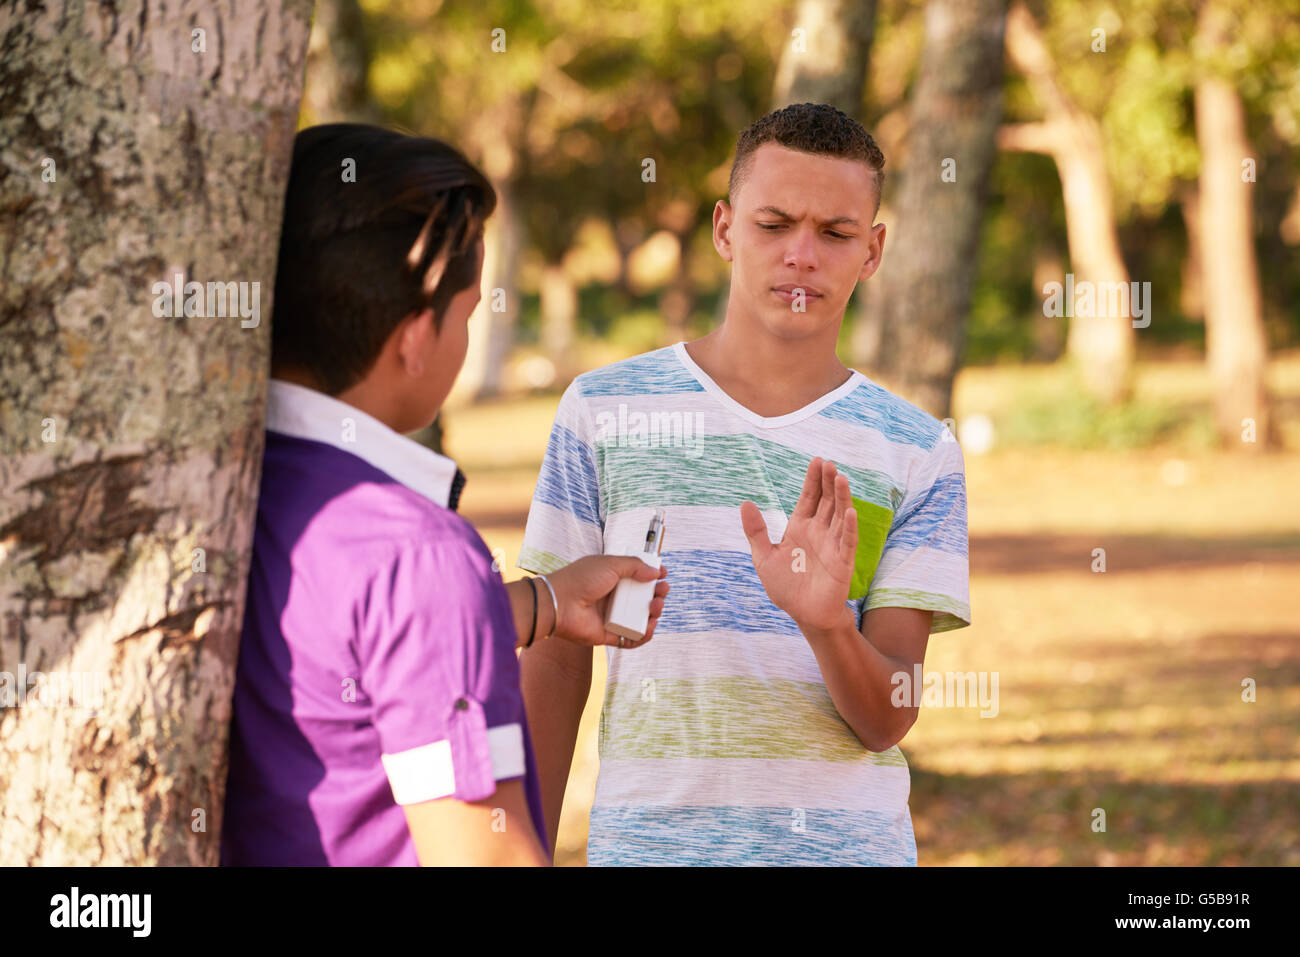 Kids in park smoking electronic cigarette. Concept of smoking and social issues with young teenagers - Stock Image